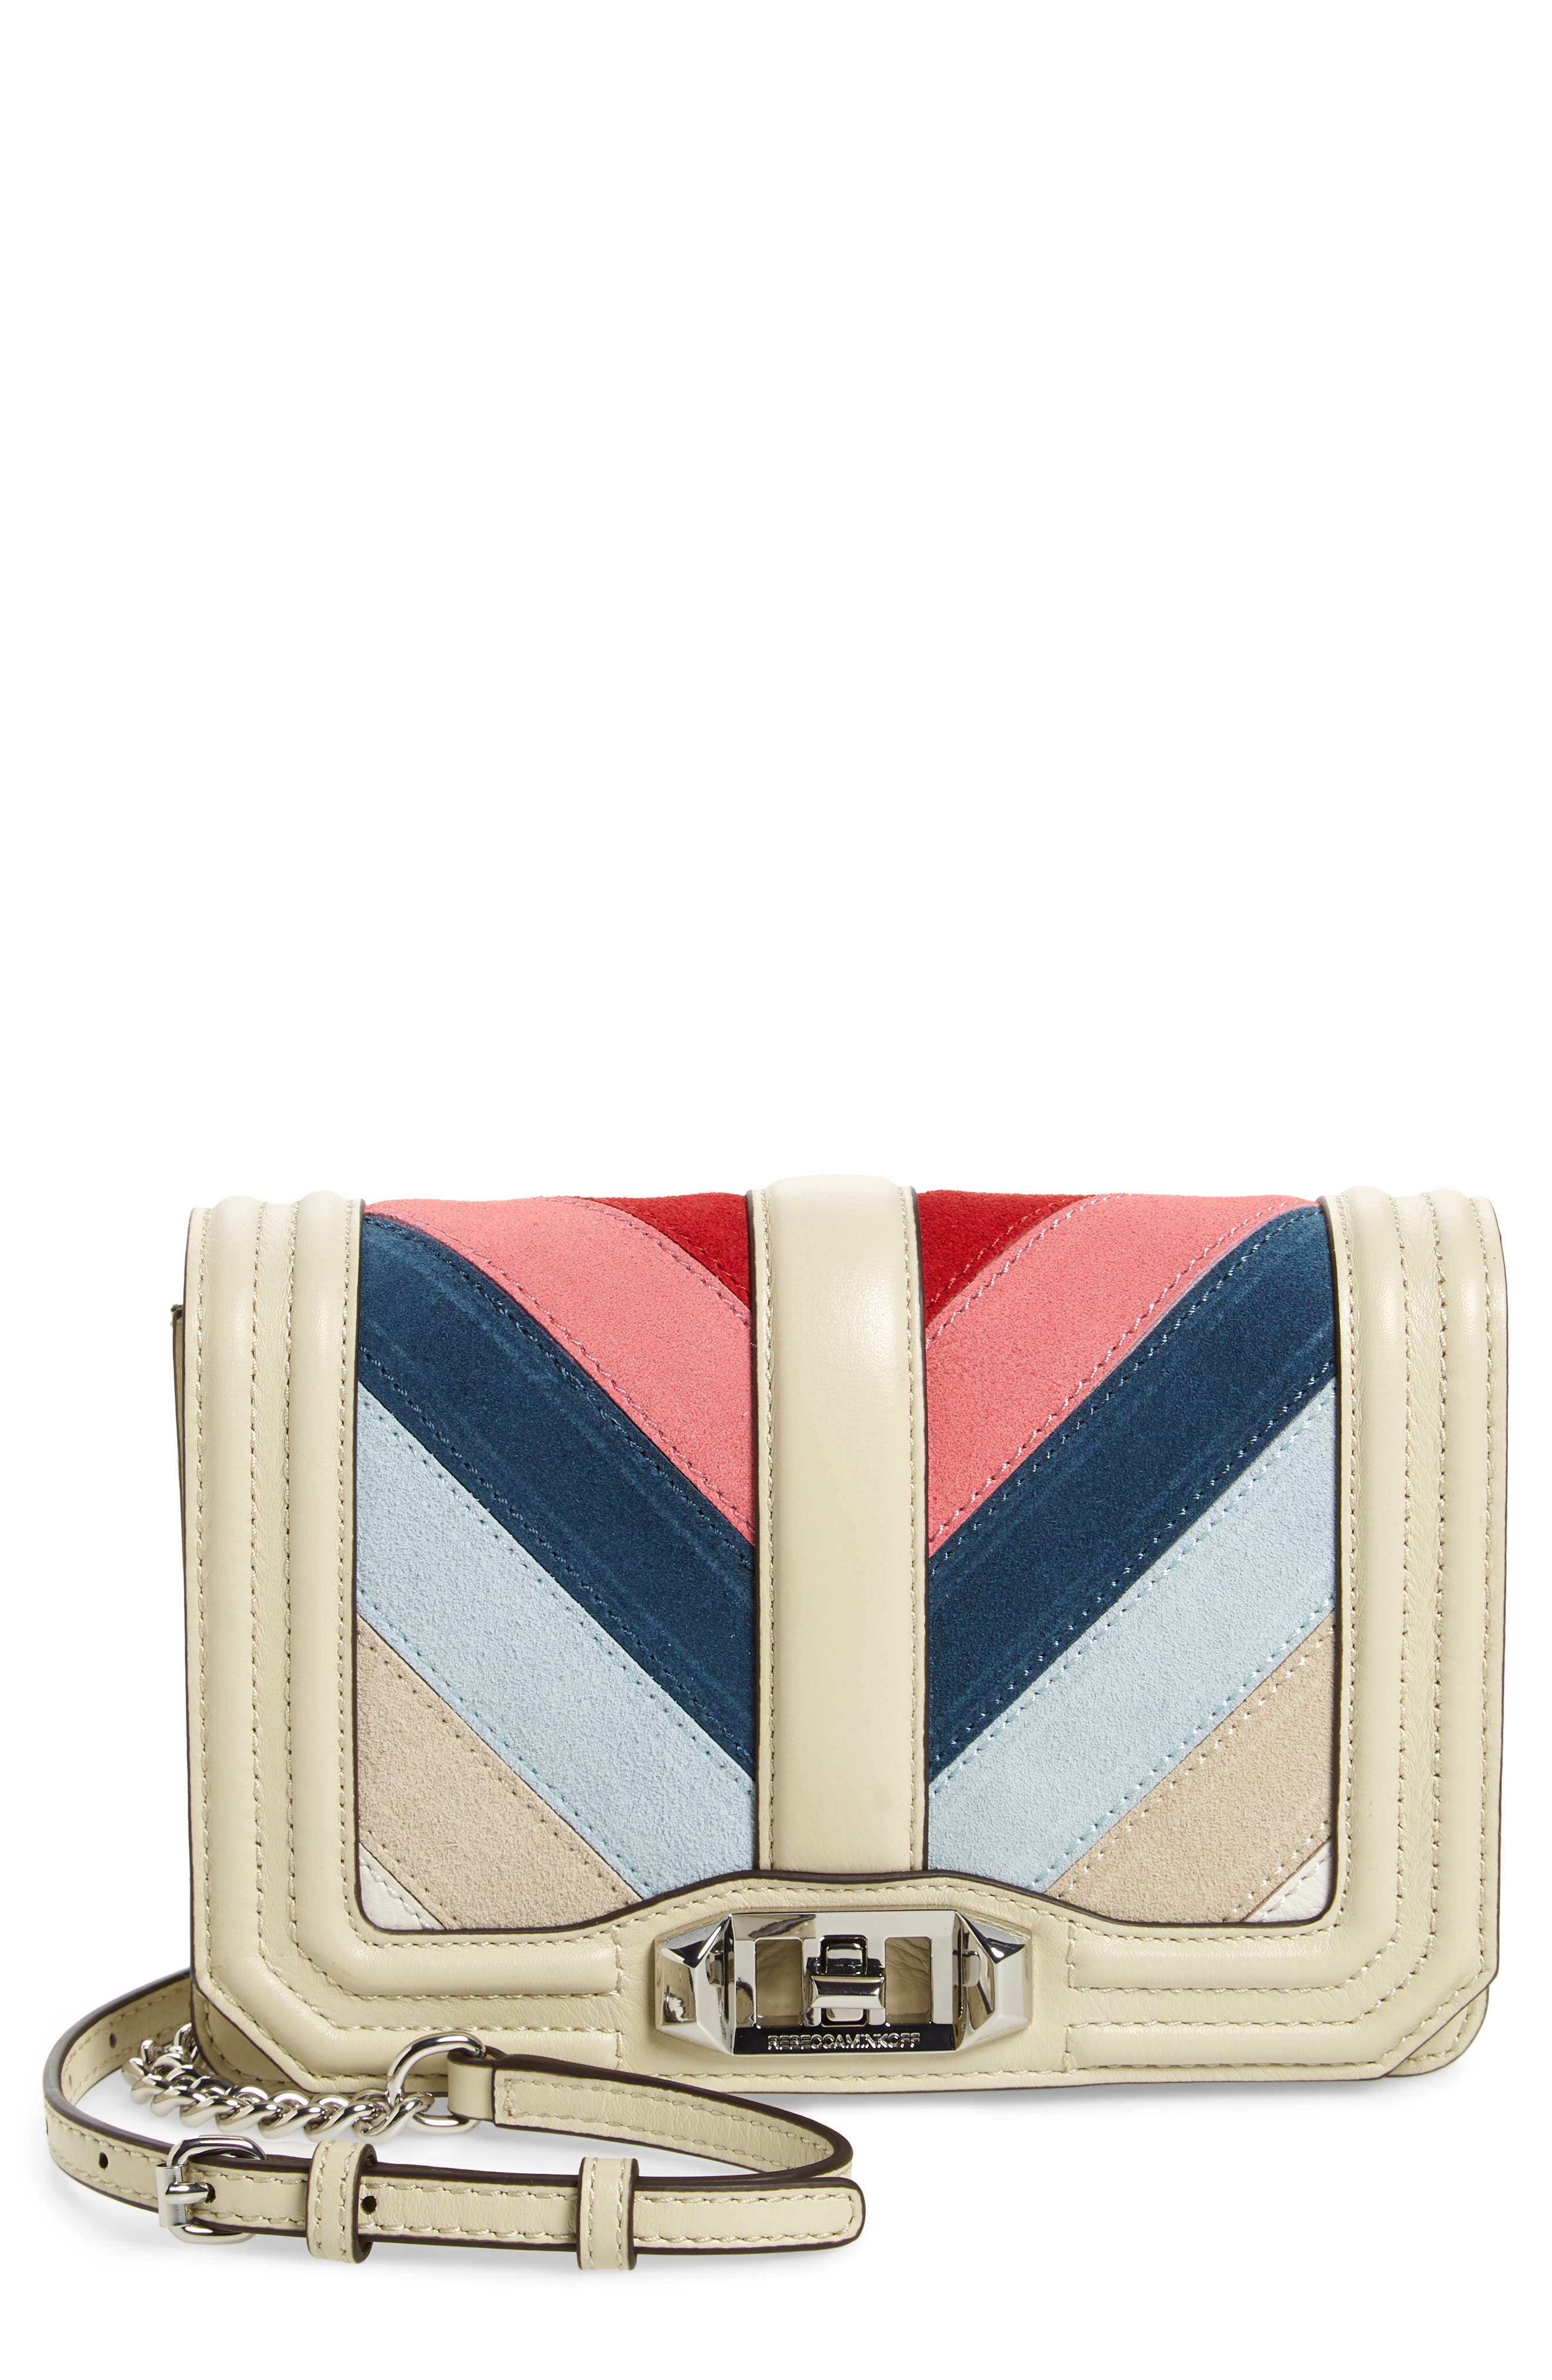 Sale alerts for  Small Love Chevron Patchwork Crossbody Bag - Covvet